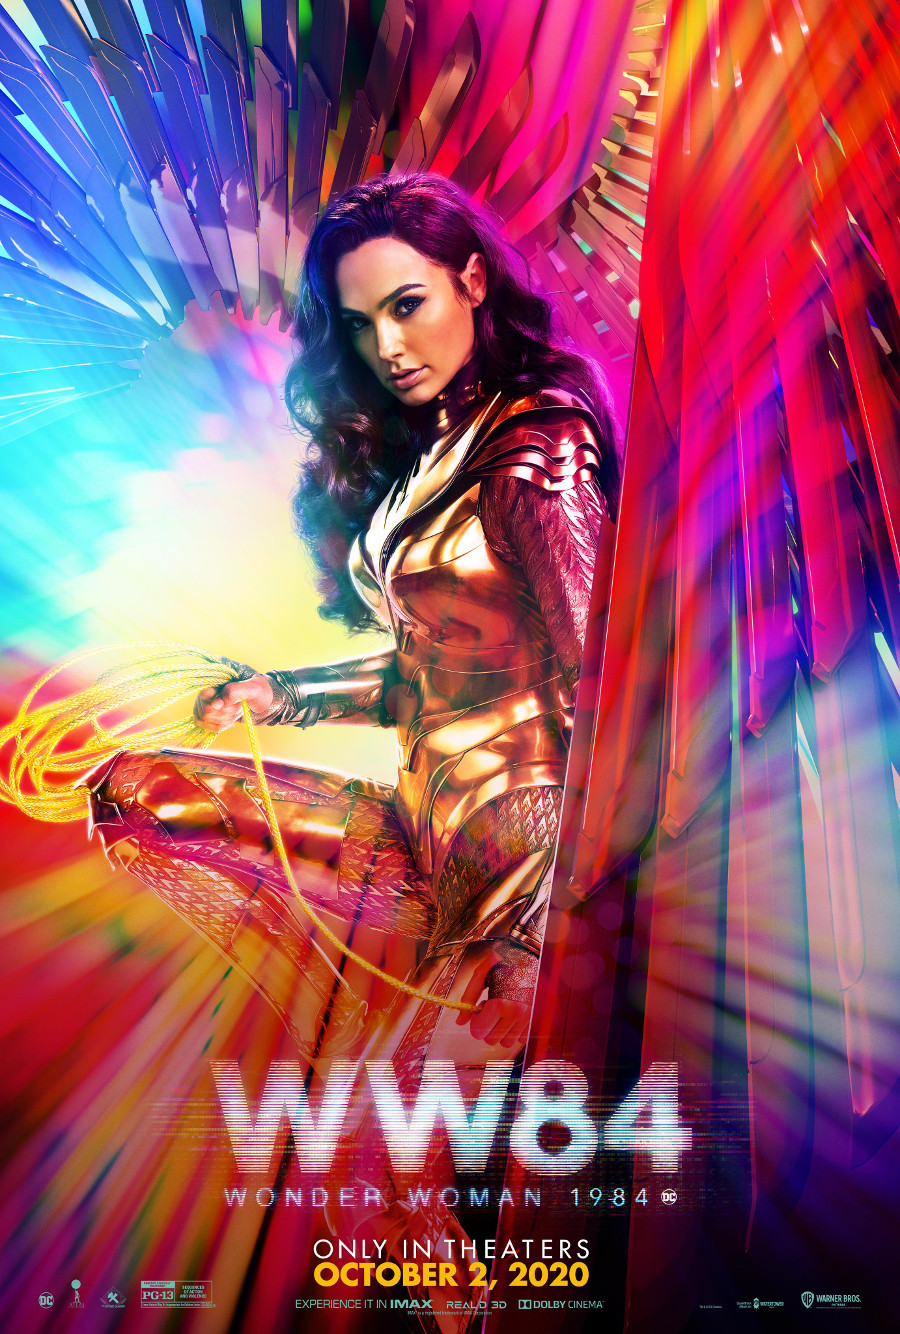 Gal Gadot Wonder Woman 1984 poster